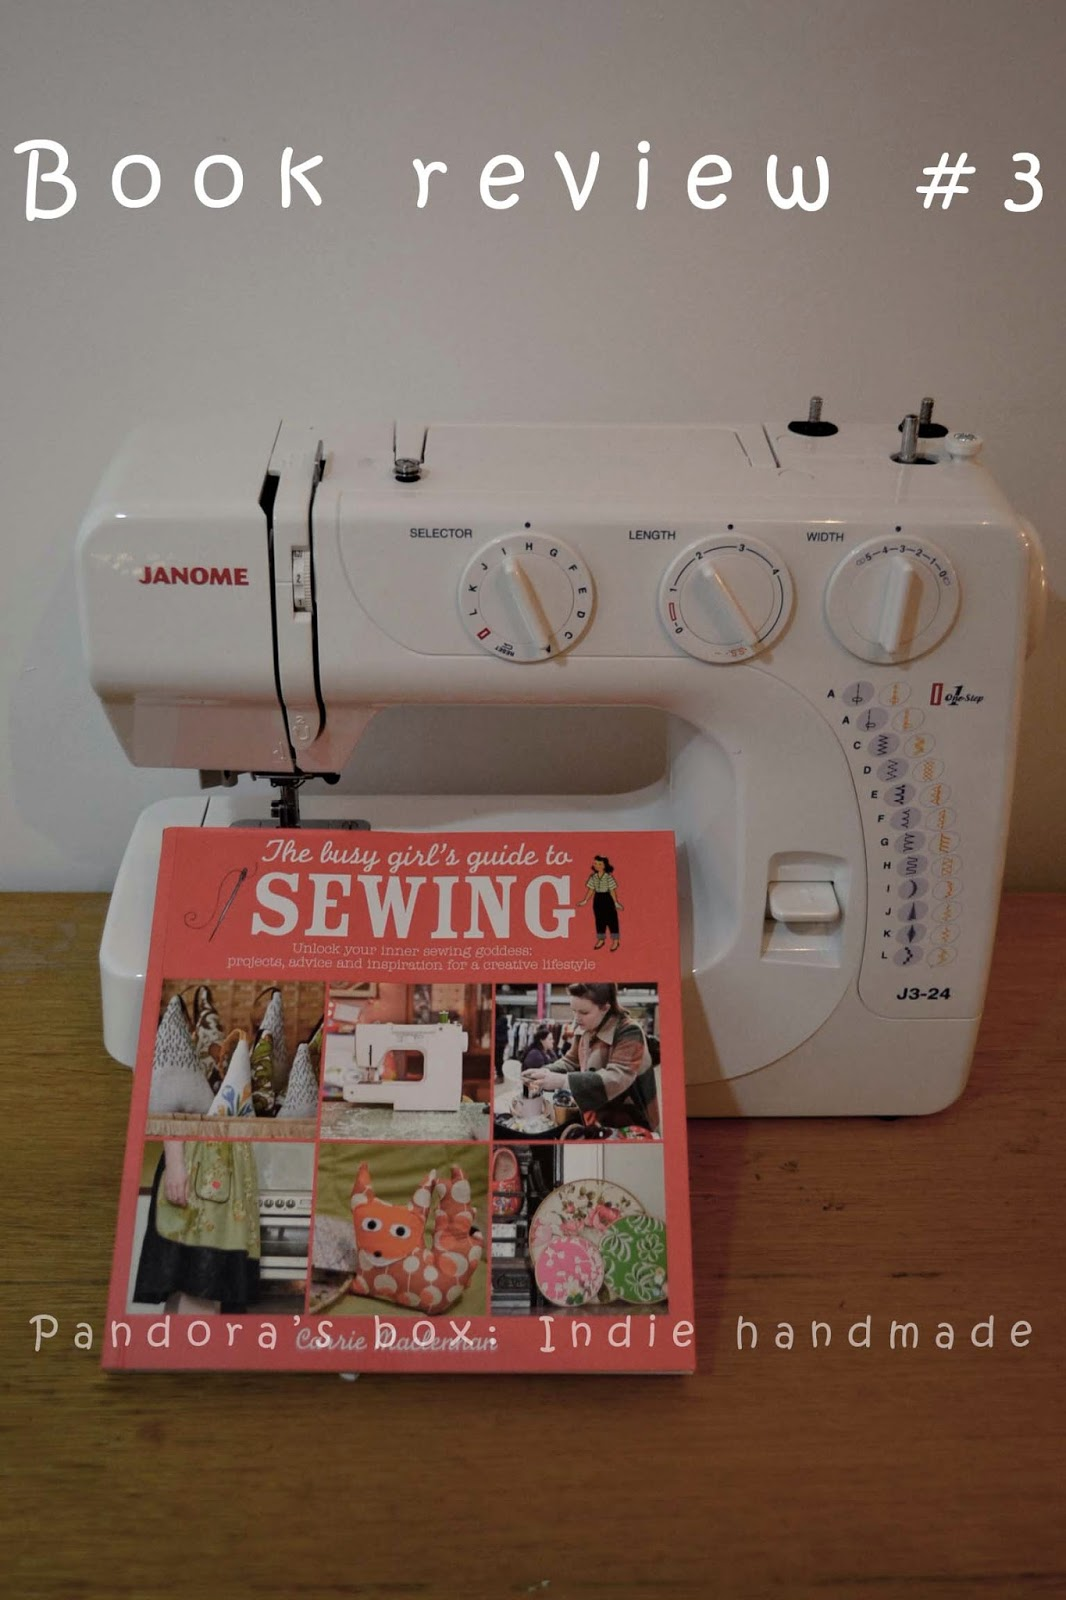 Book review: The busy girl's guide to sewing